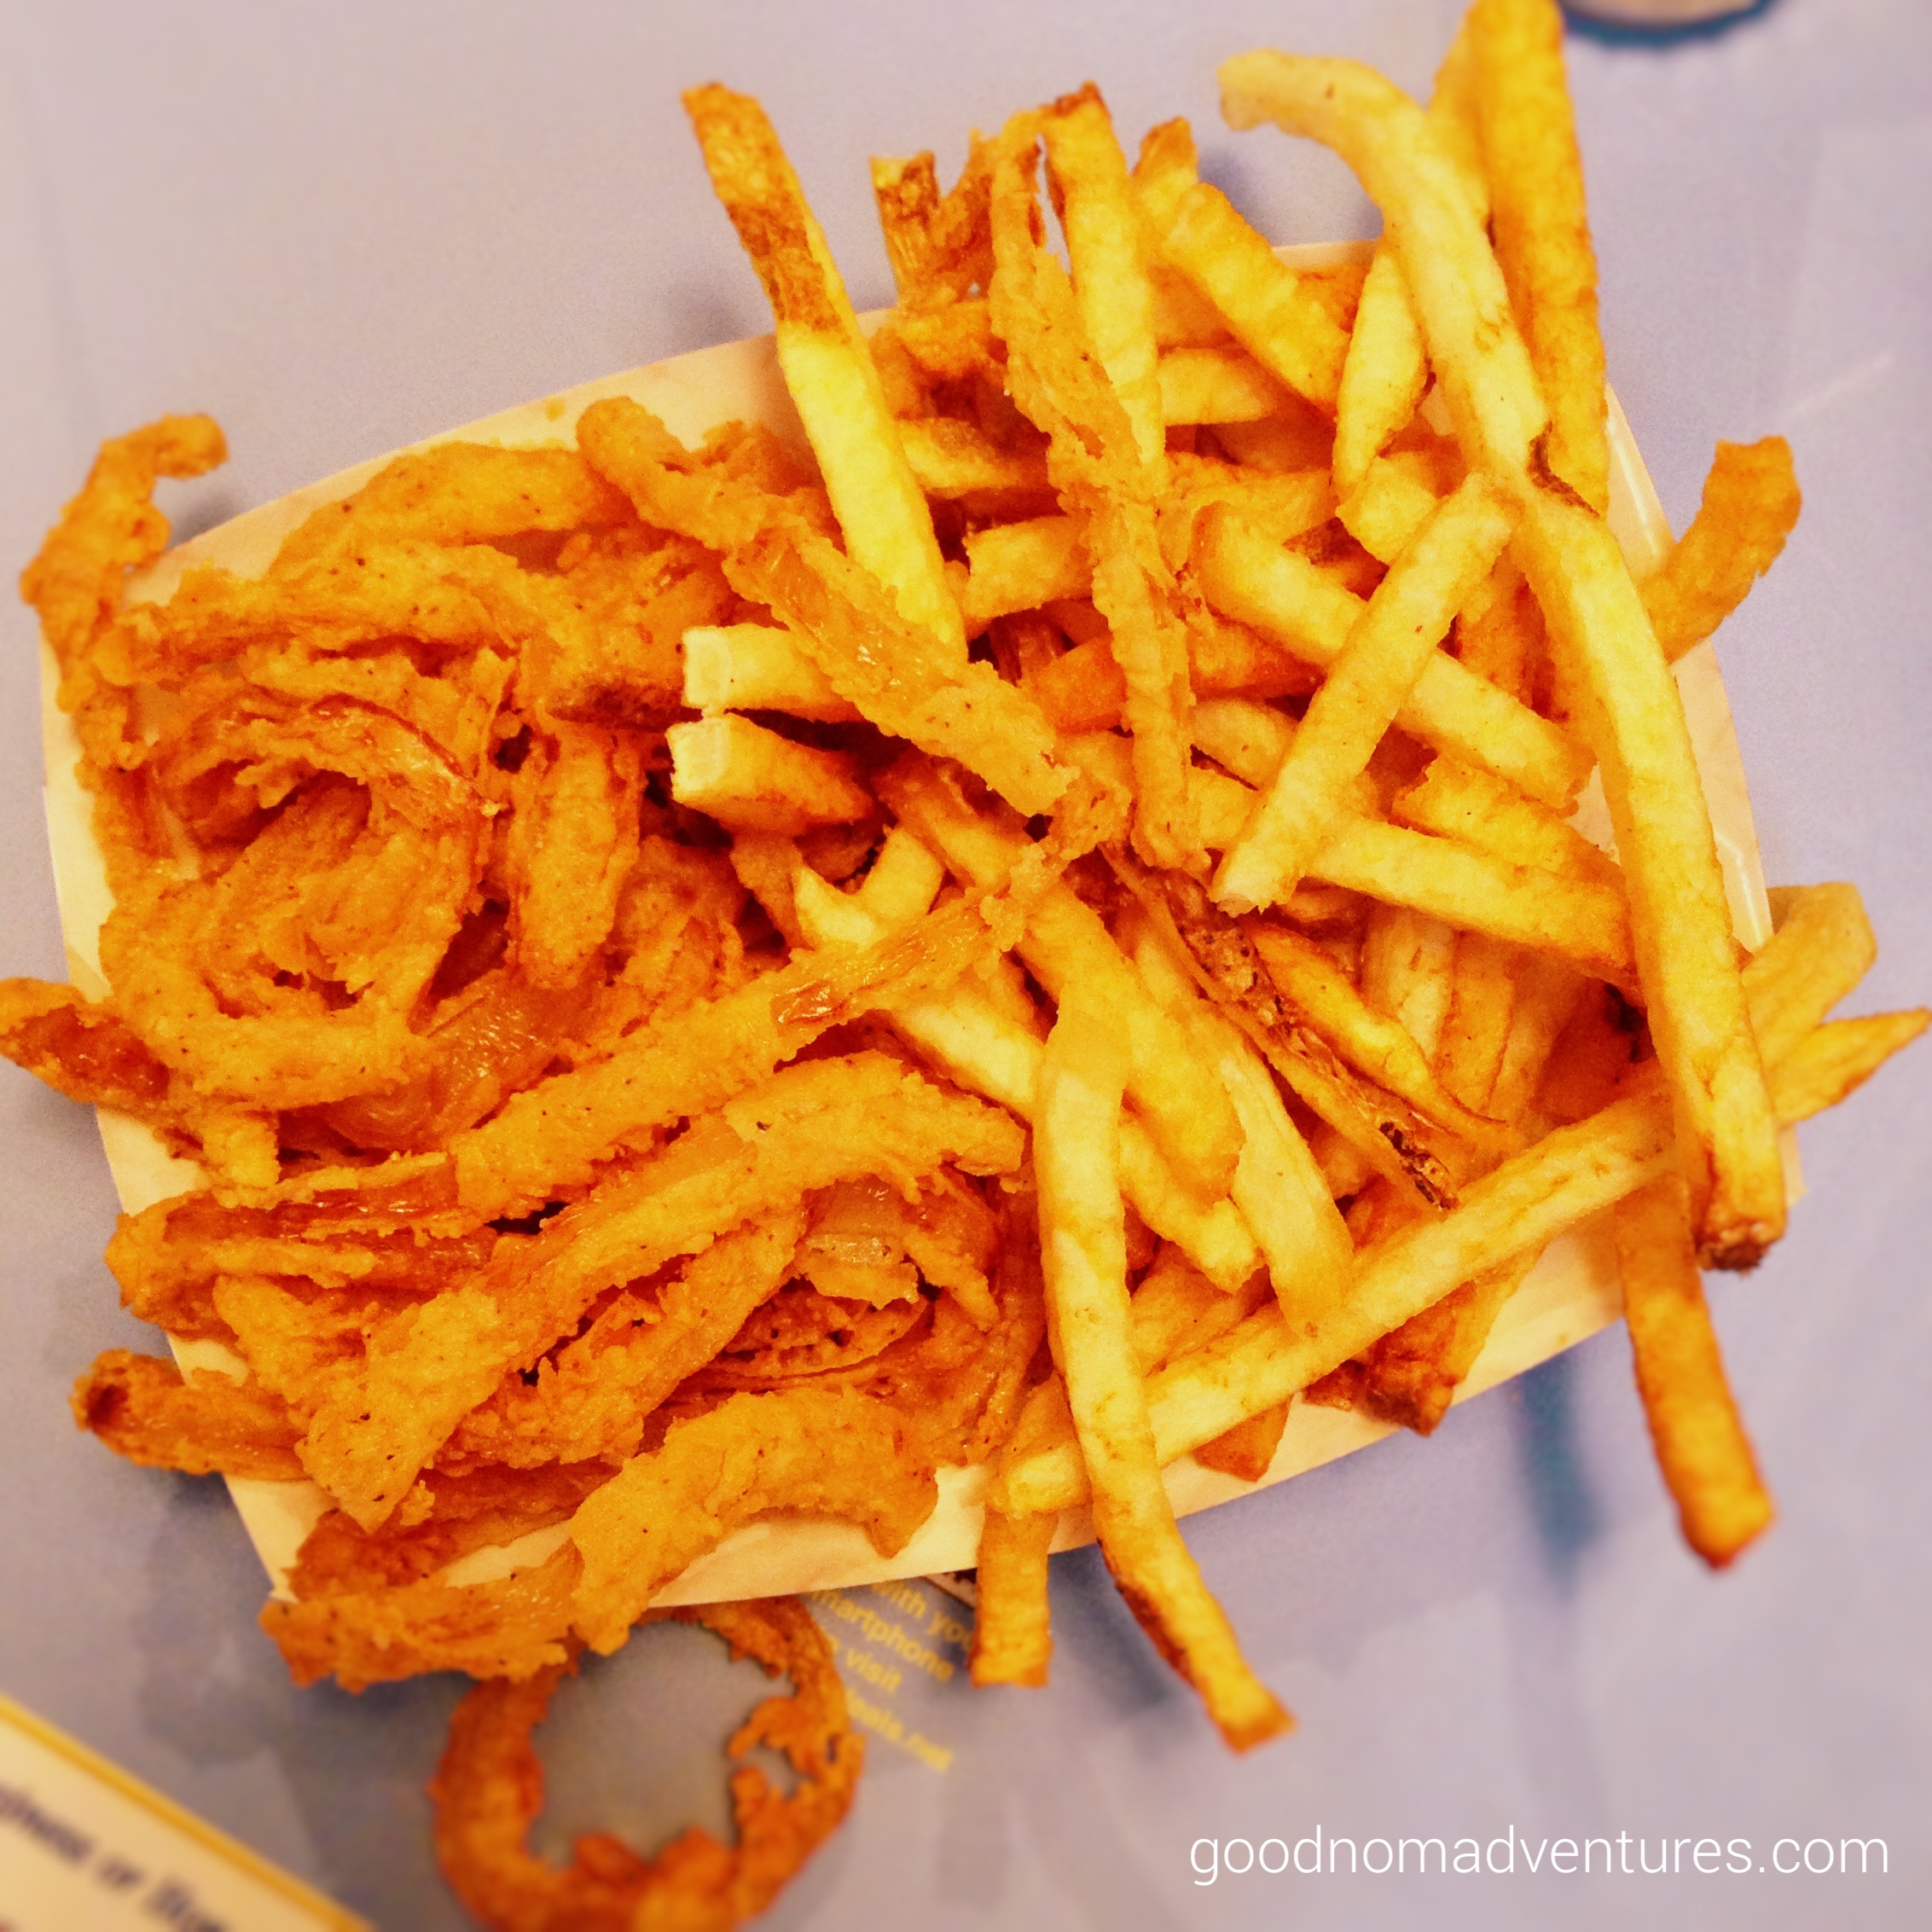 Half and half of fries and onion rings